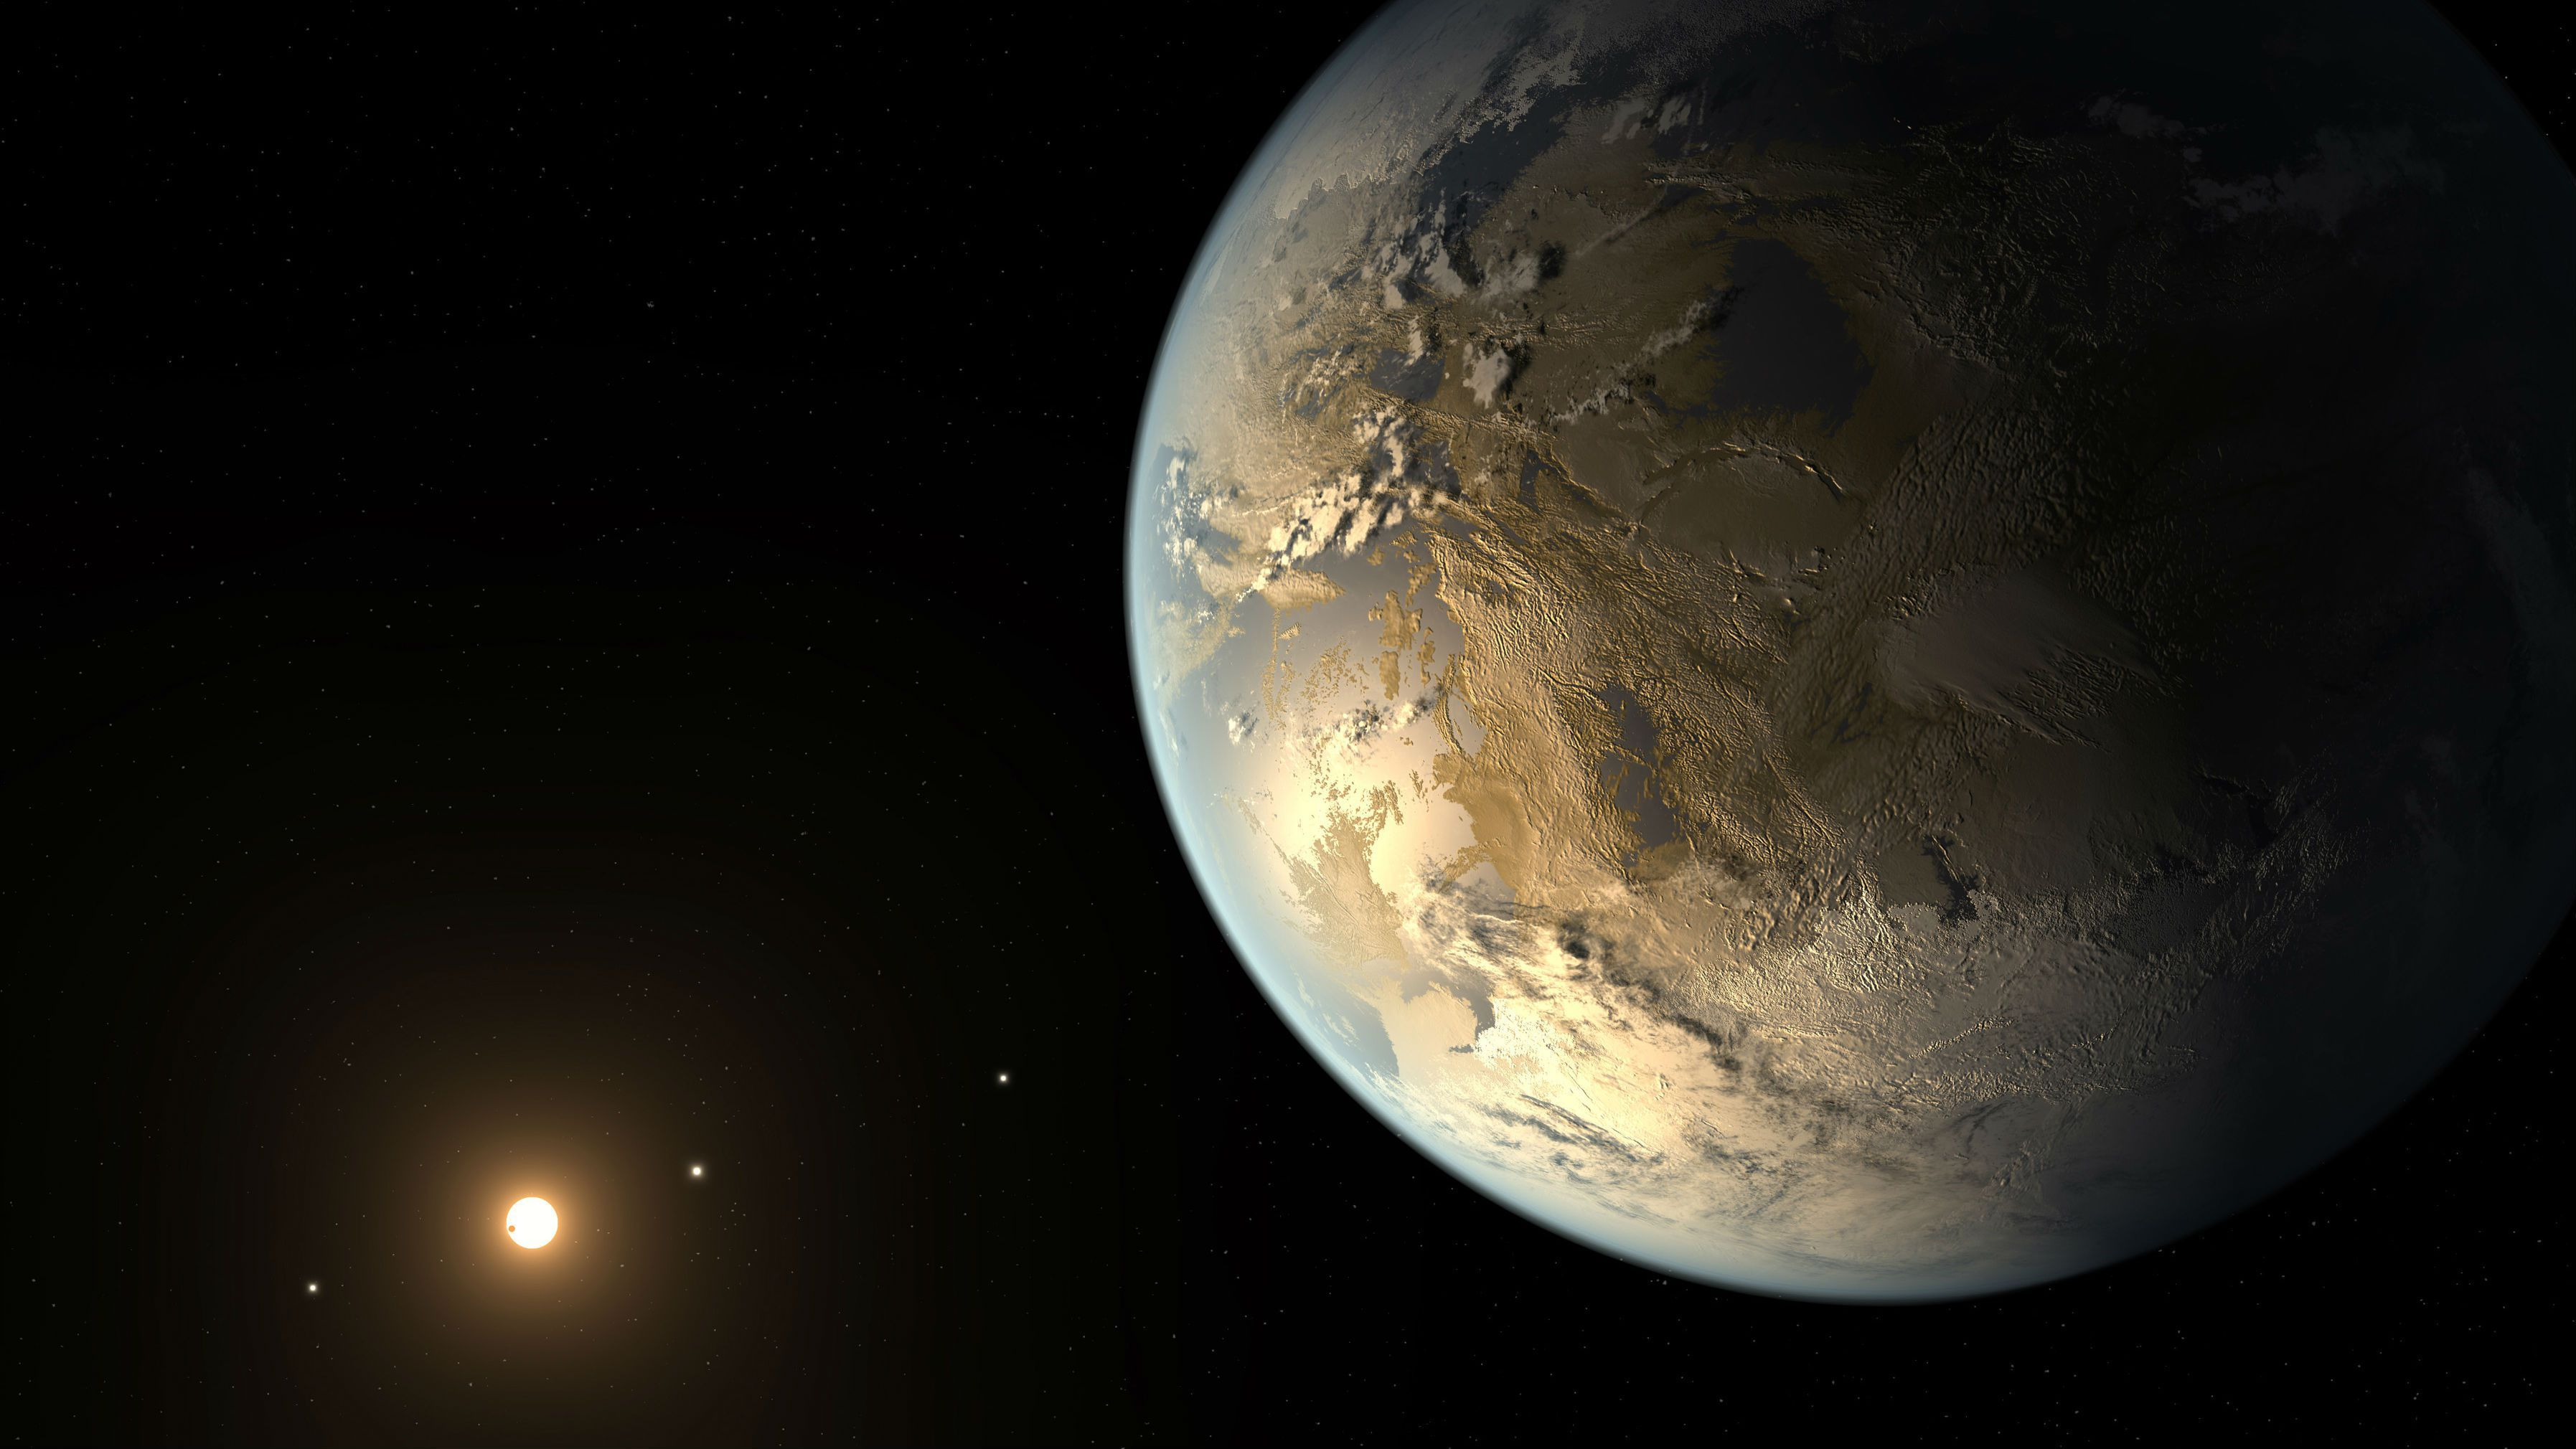 Scientists observe Earth-like planet in search of alien life